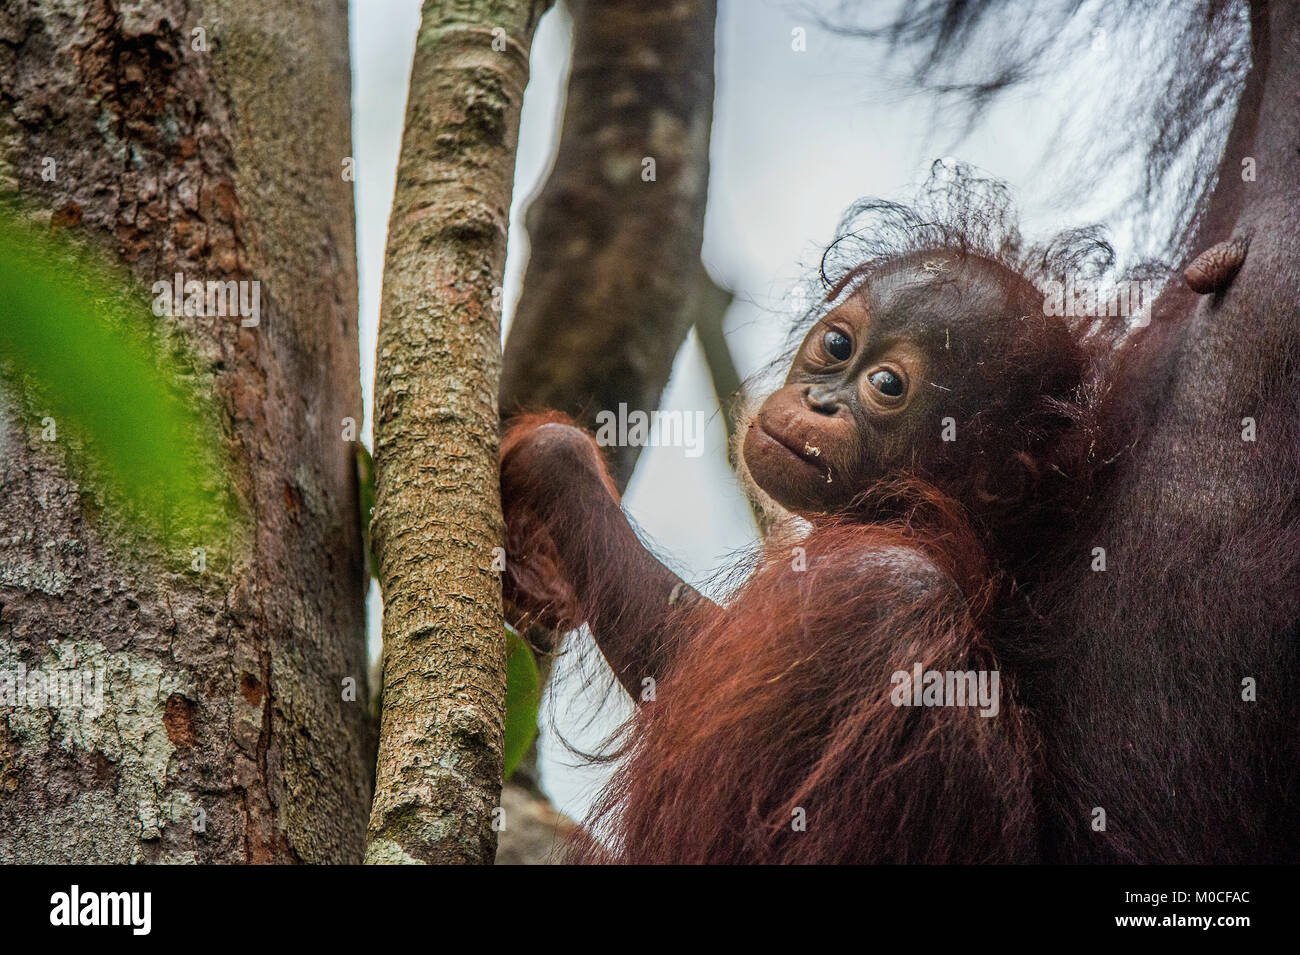 Baby orangutan (Pongo pygmaeus) in the wild nature. Natural habitat in Rainforest of Island Borneo. Indonesia. - Stock Image